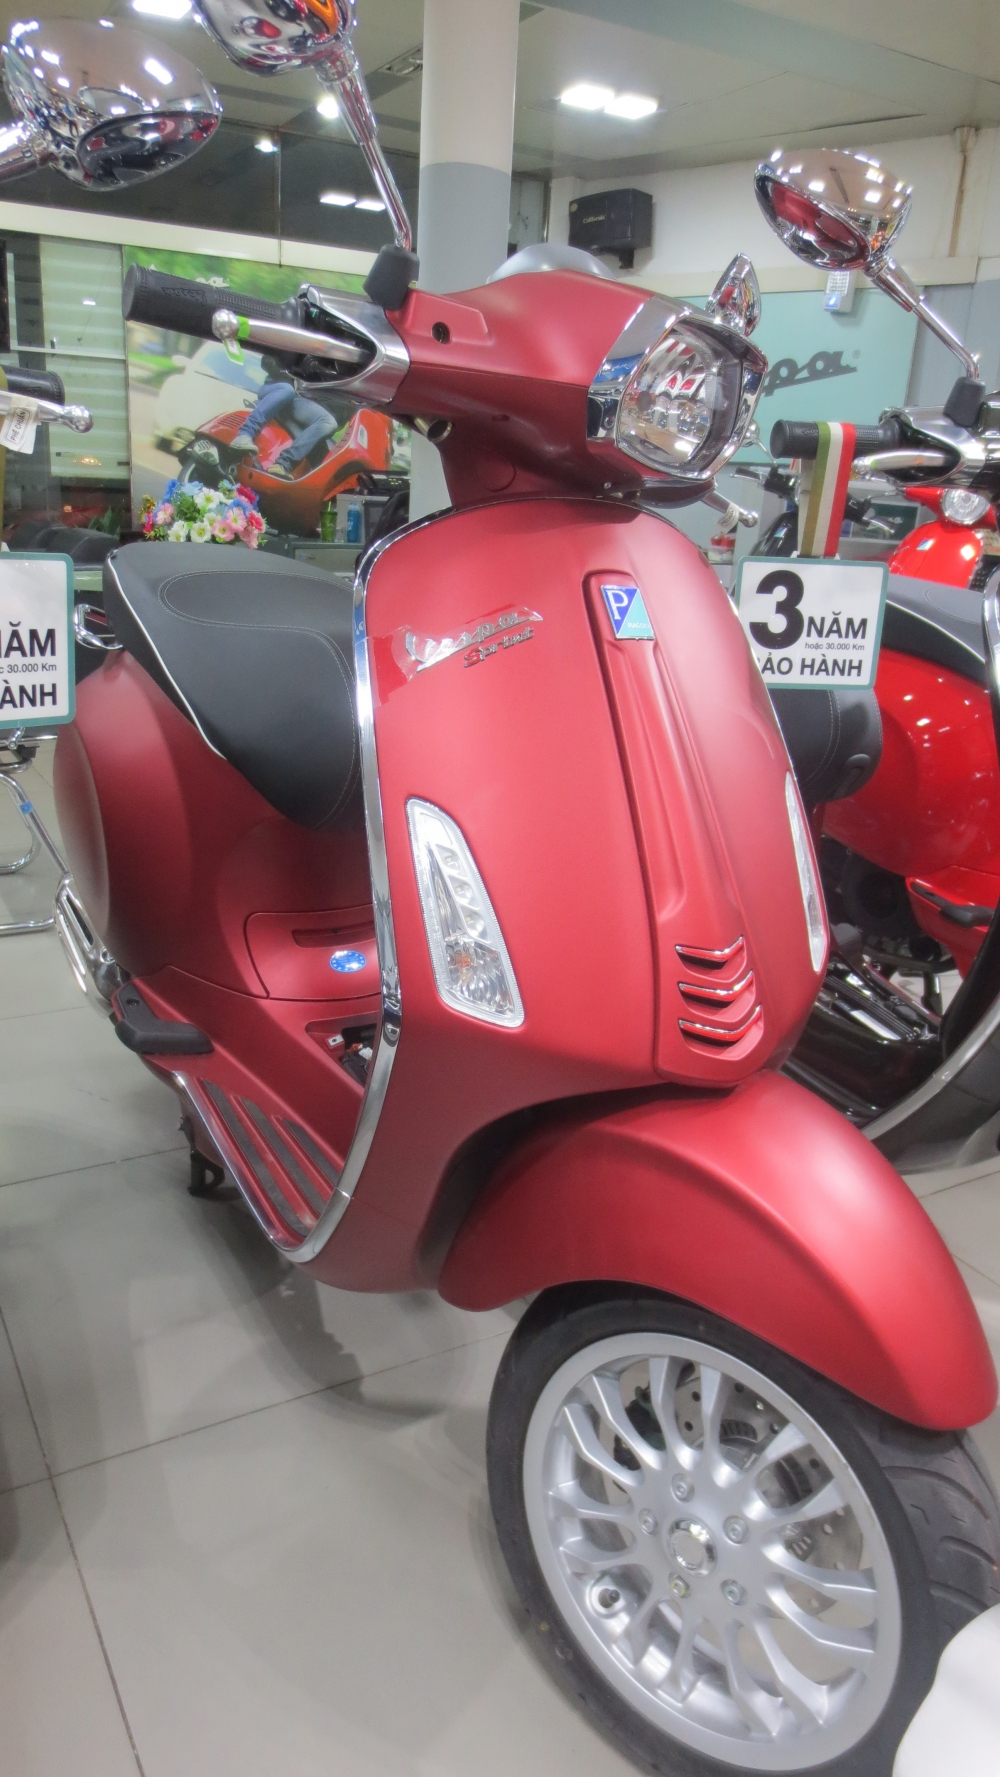 VESPA chinh hang gia tot nhat Update lien tuc - 20